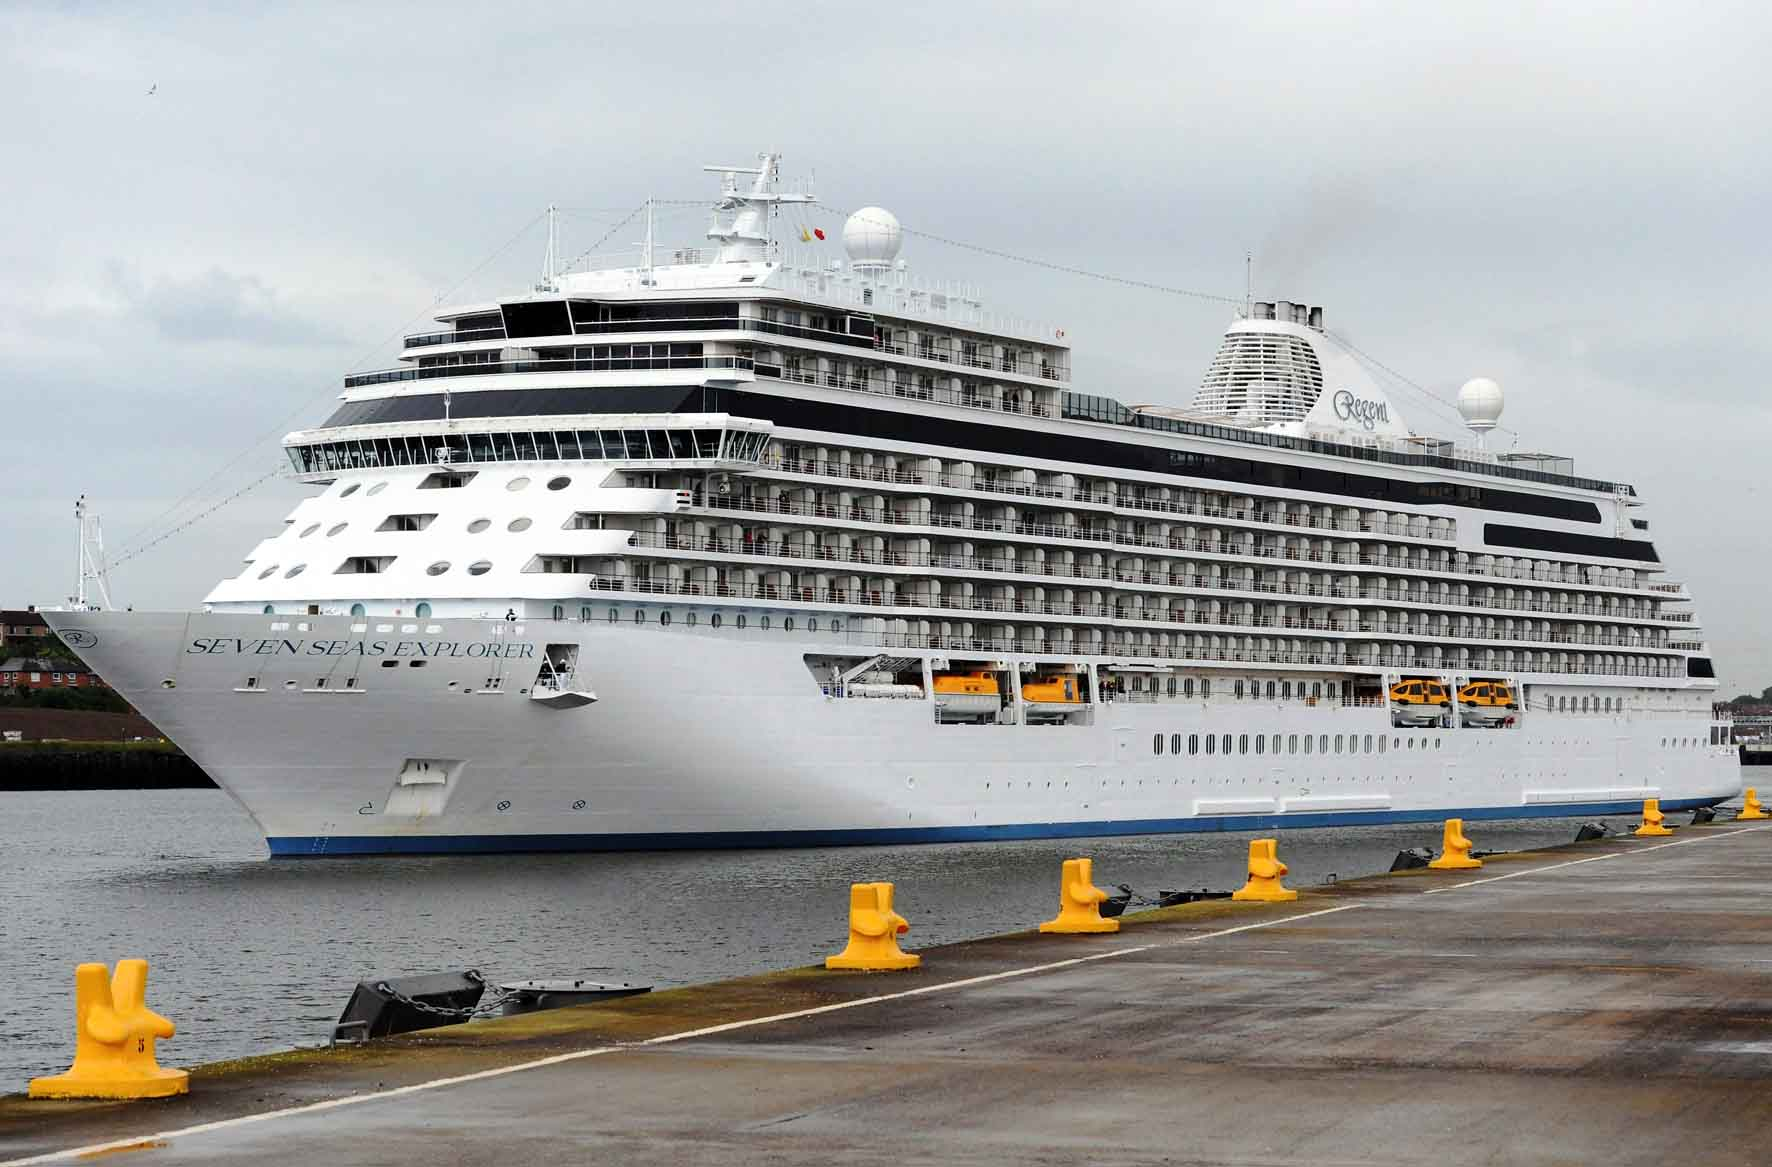 Port of tyne welcomes cruise ship seven seas explorer for High end cruise lines